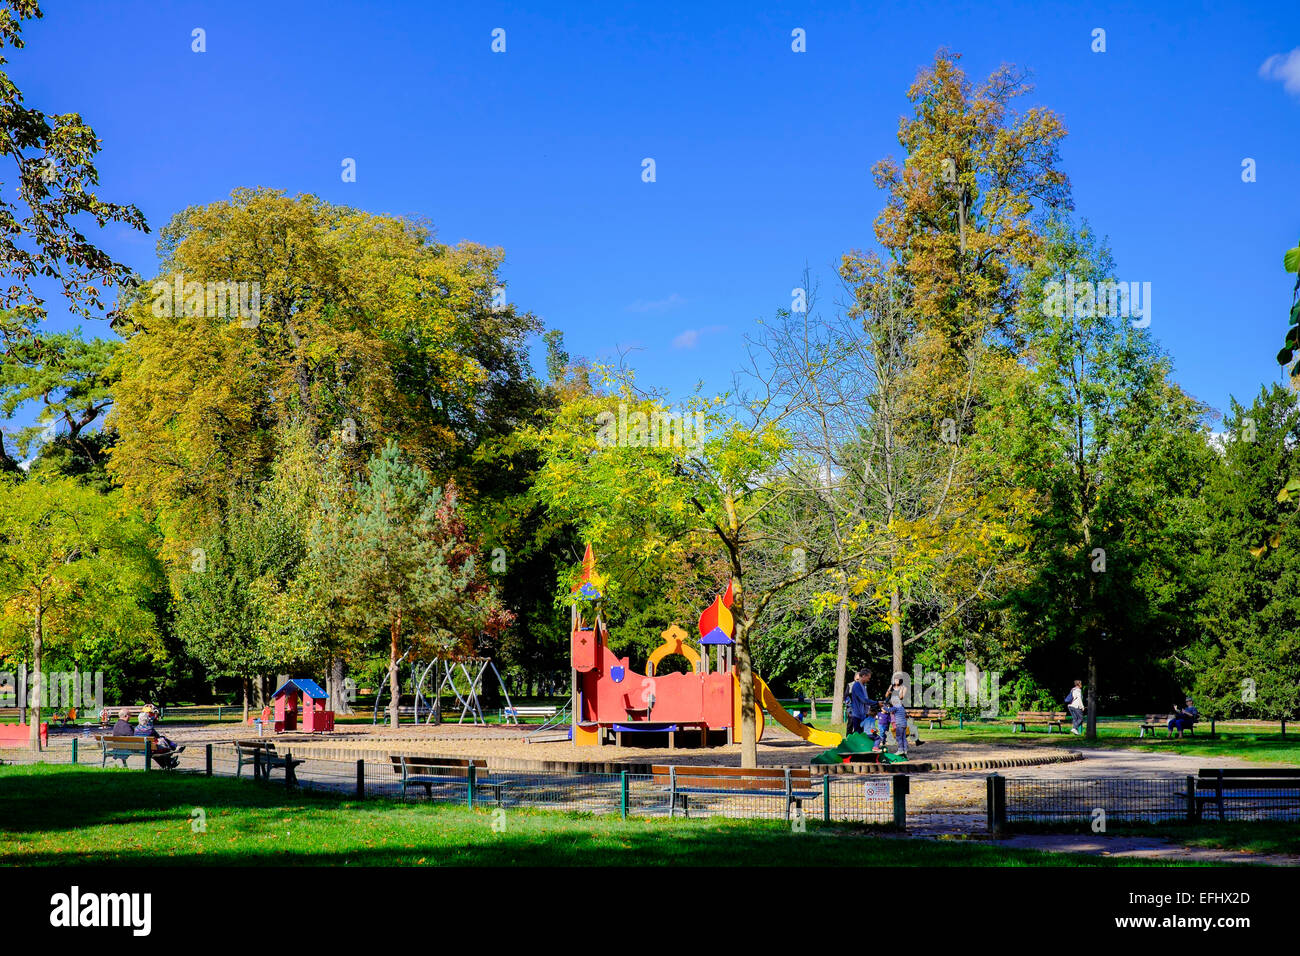 aire de jeux pour enfants parc de l 39 orangerie park strasbourg alsace france banque d 39 images. Black Bedroom Furniture Sets. Home Design Ideas